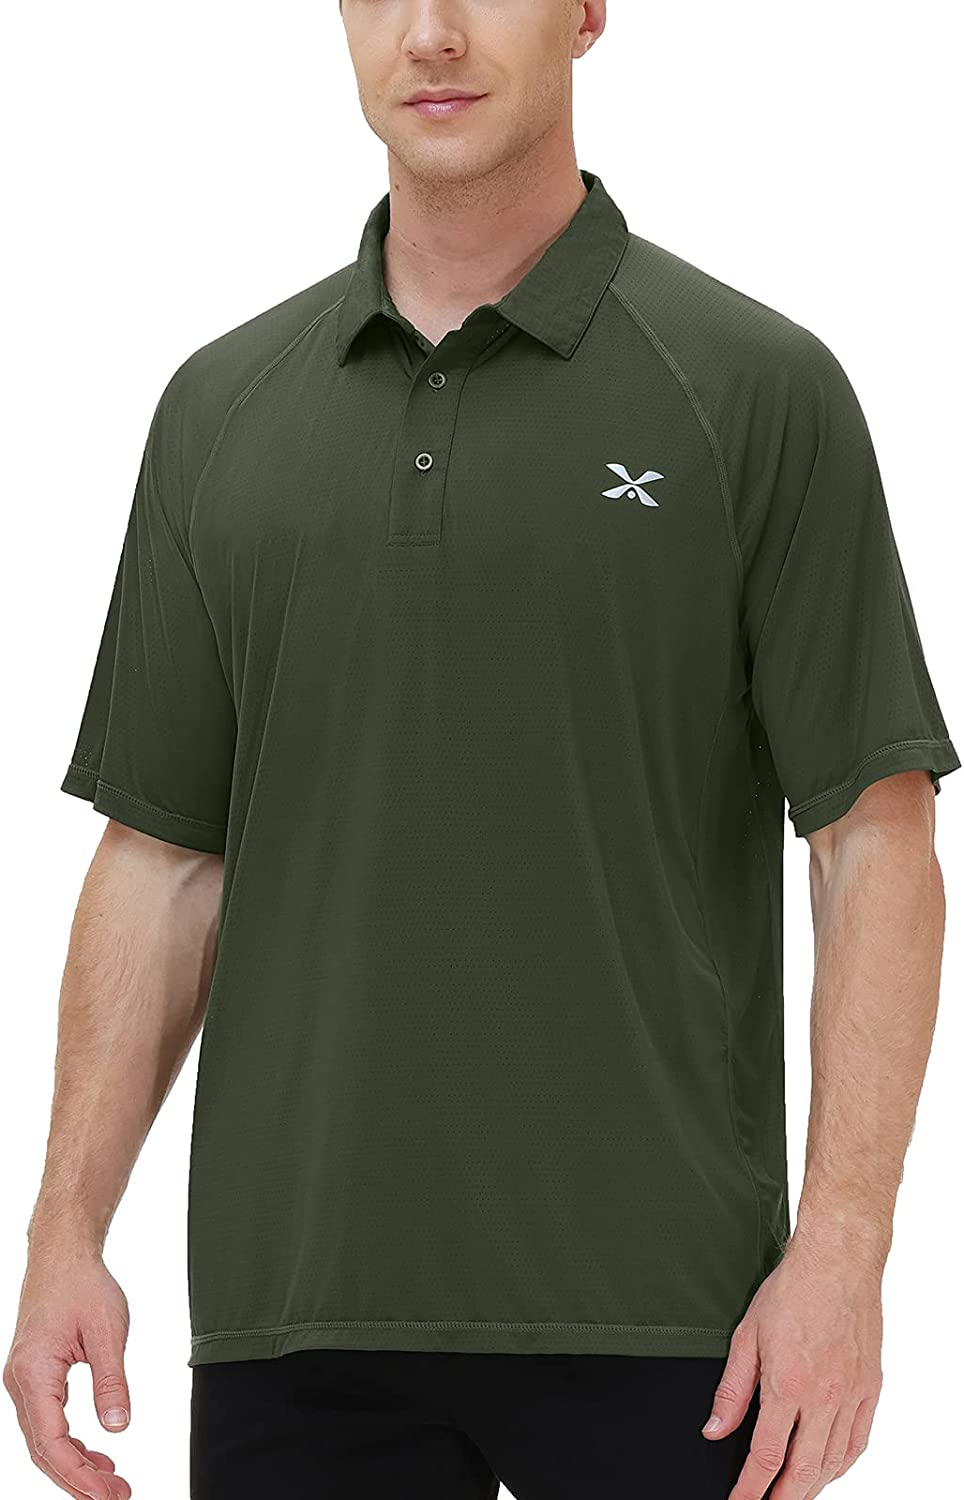 Corna Men's Golf Our shop OFFers the best service Polo Shirt Limited time sale Long Moisture Performance Wicking an